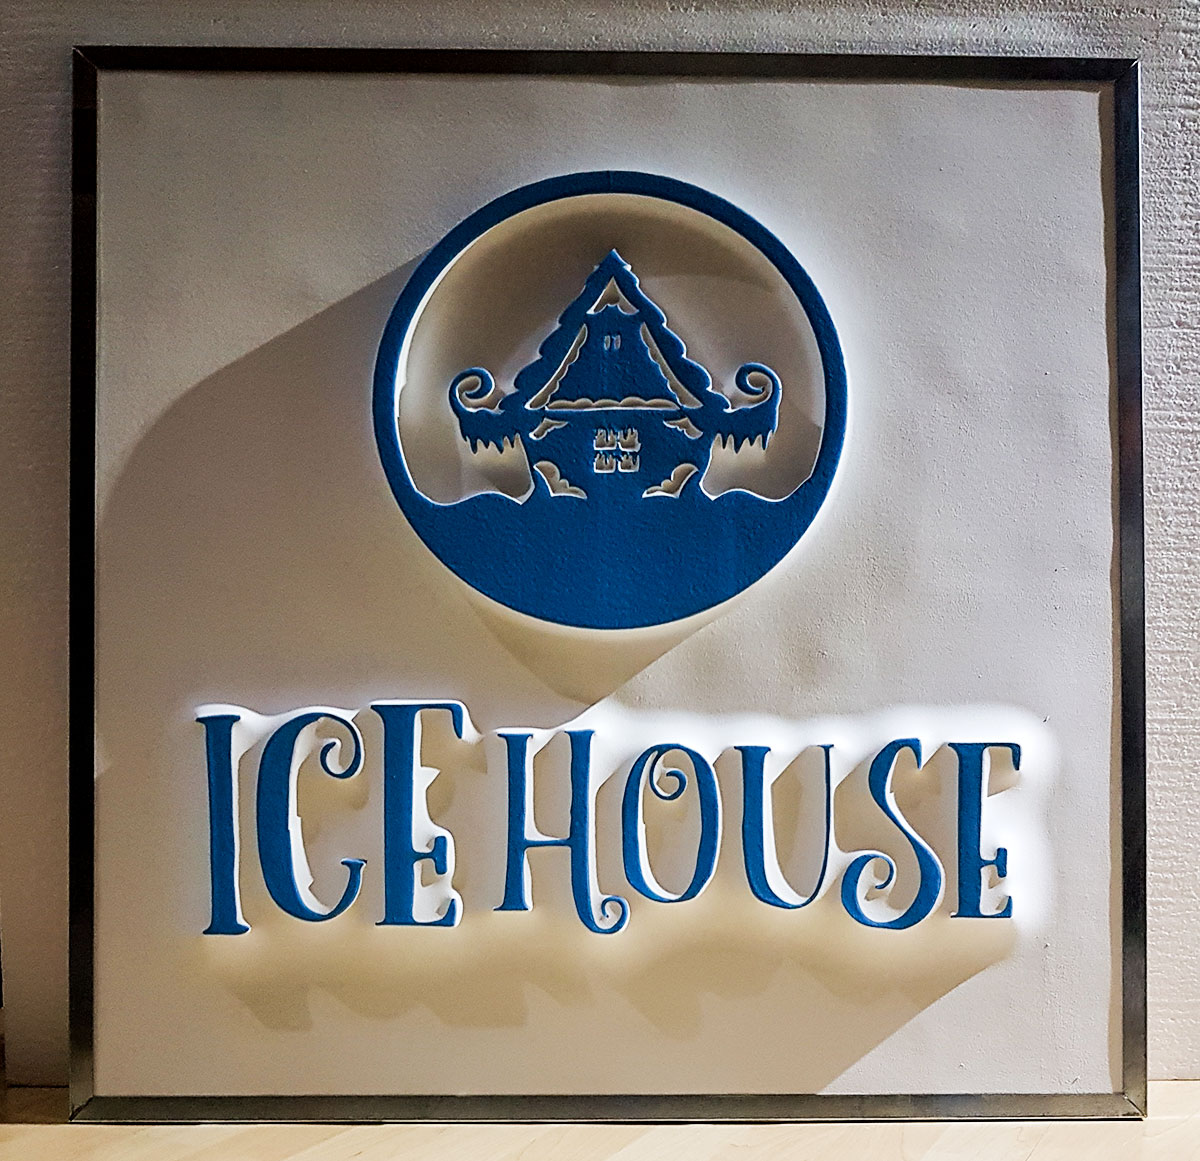 IceHouse 3D reklama